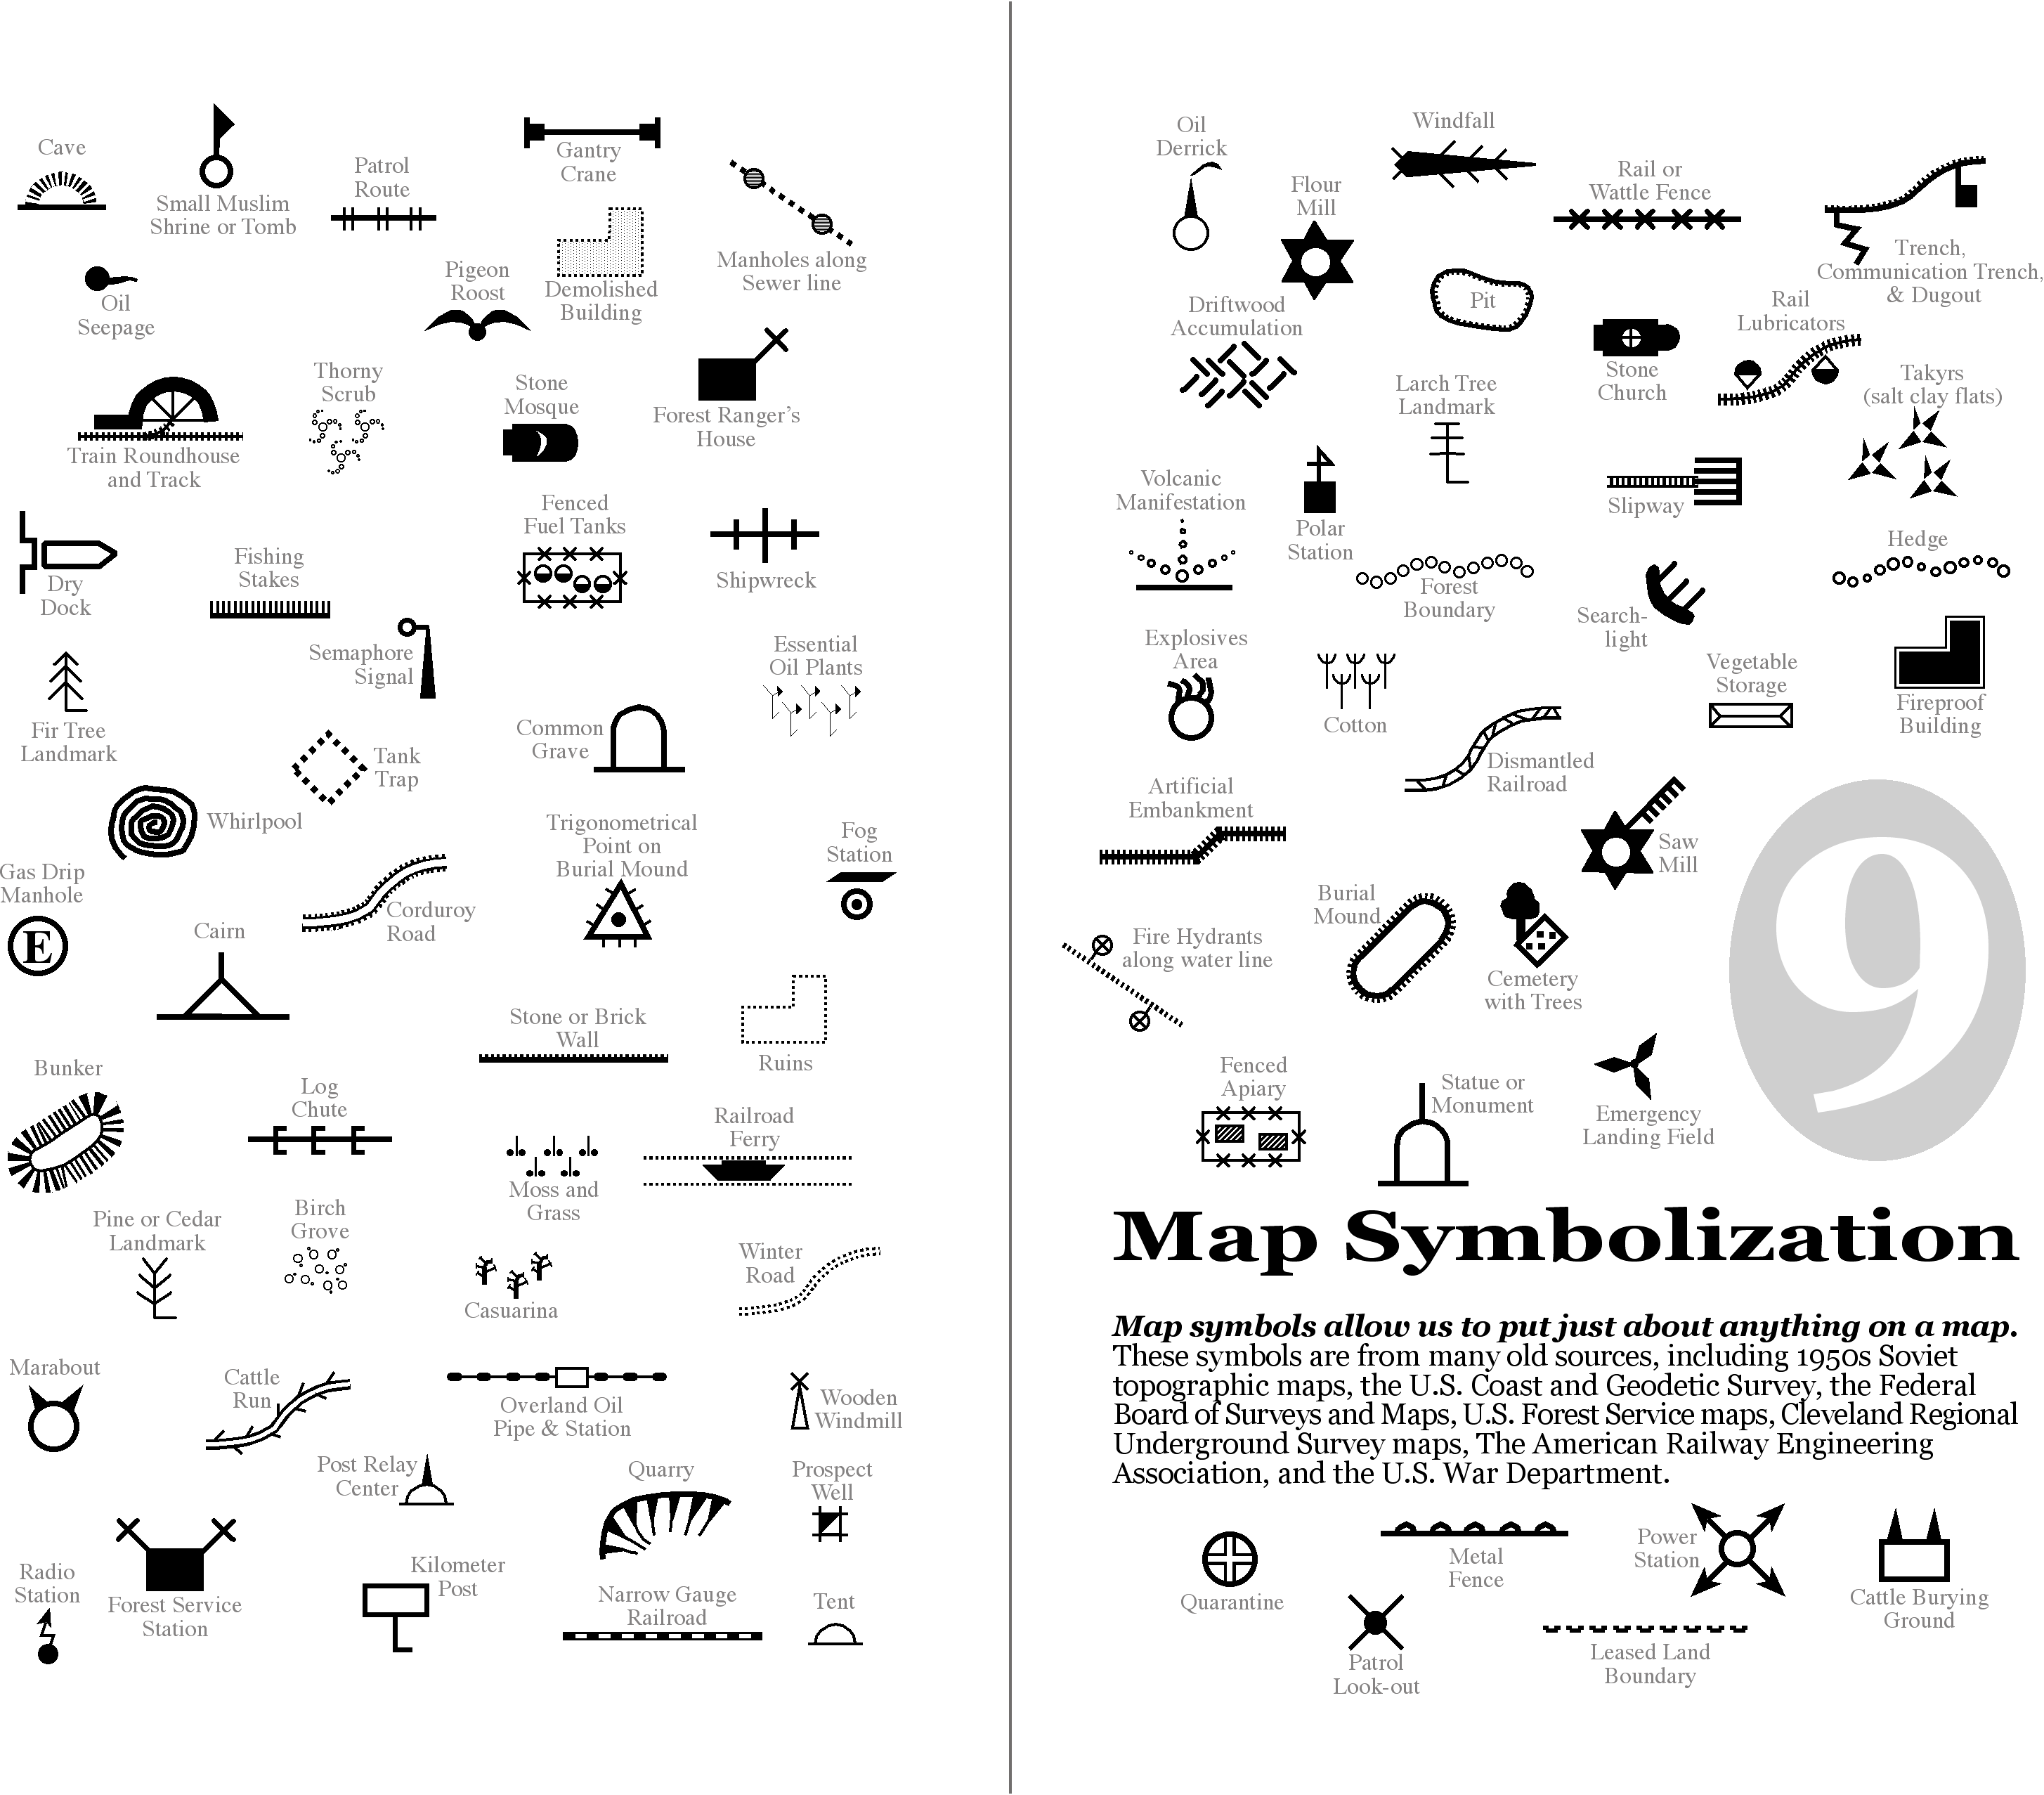 Custom map symbols in google maps making maps diy cartography symbols annotated 376k buycottarizona Image collections